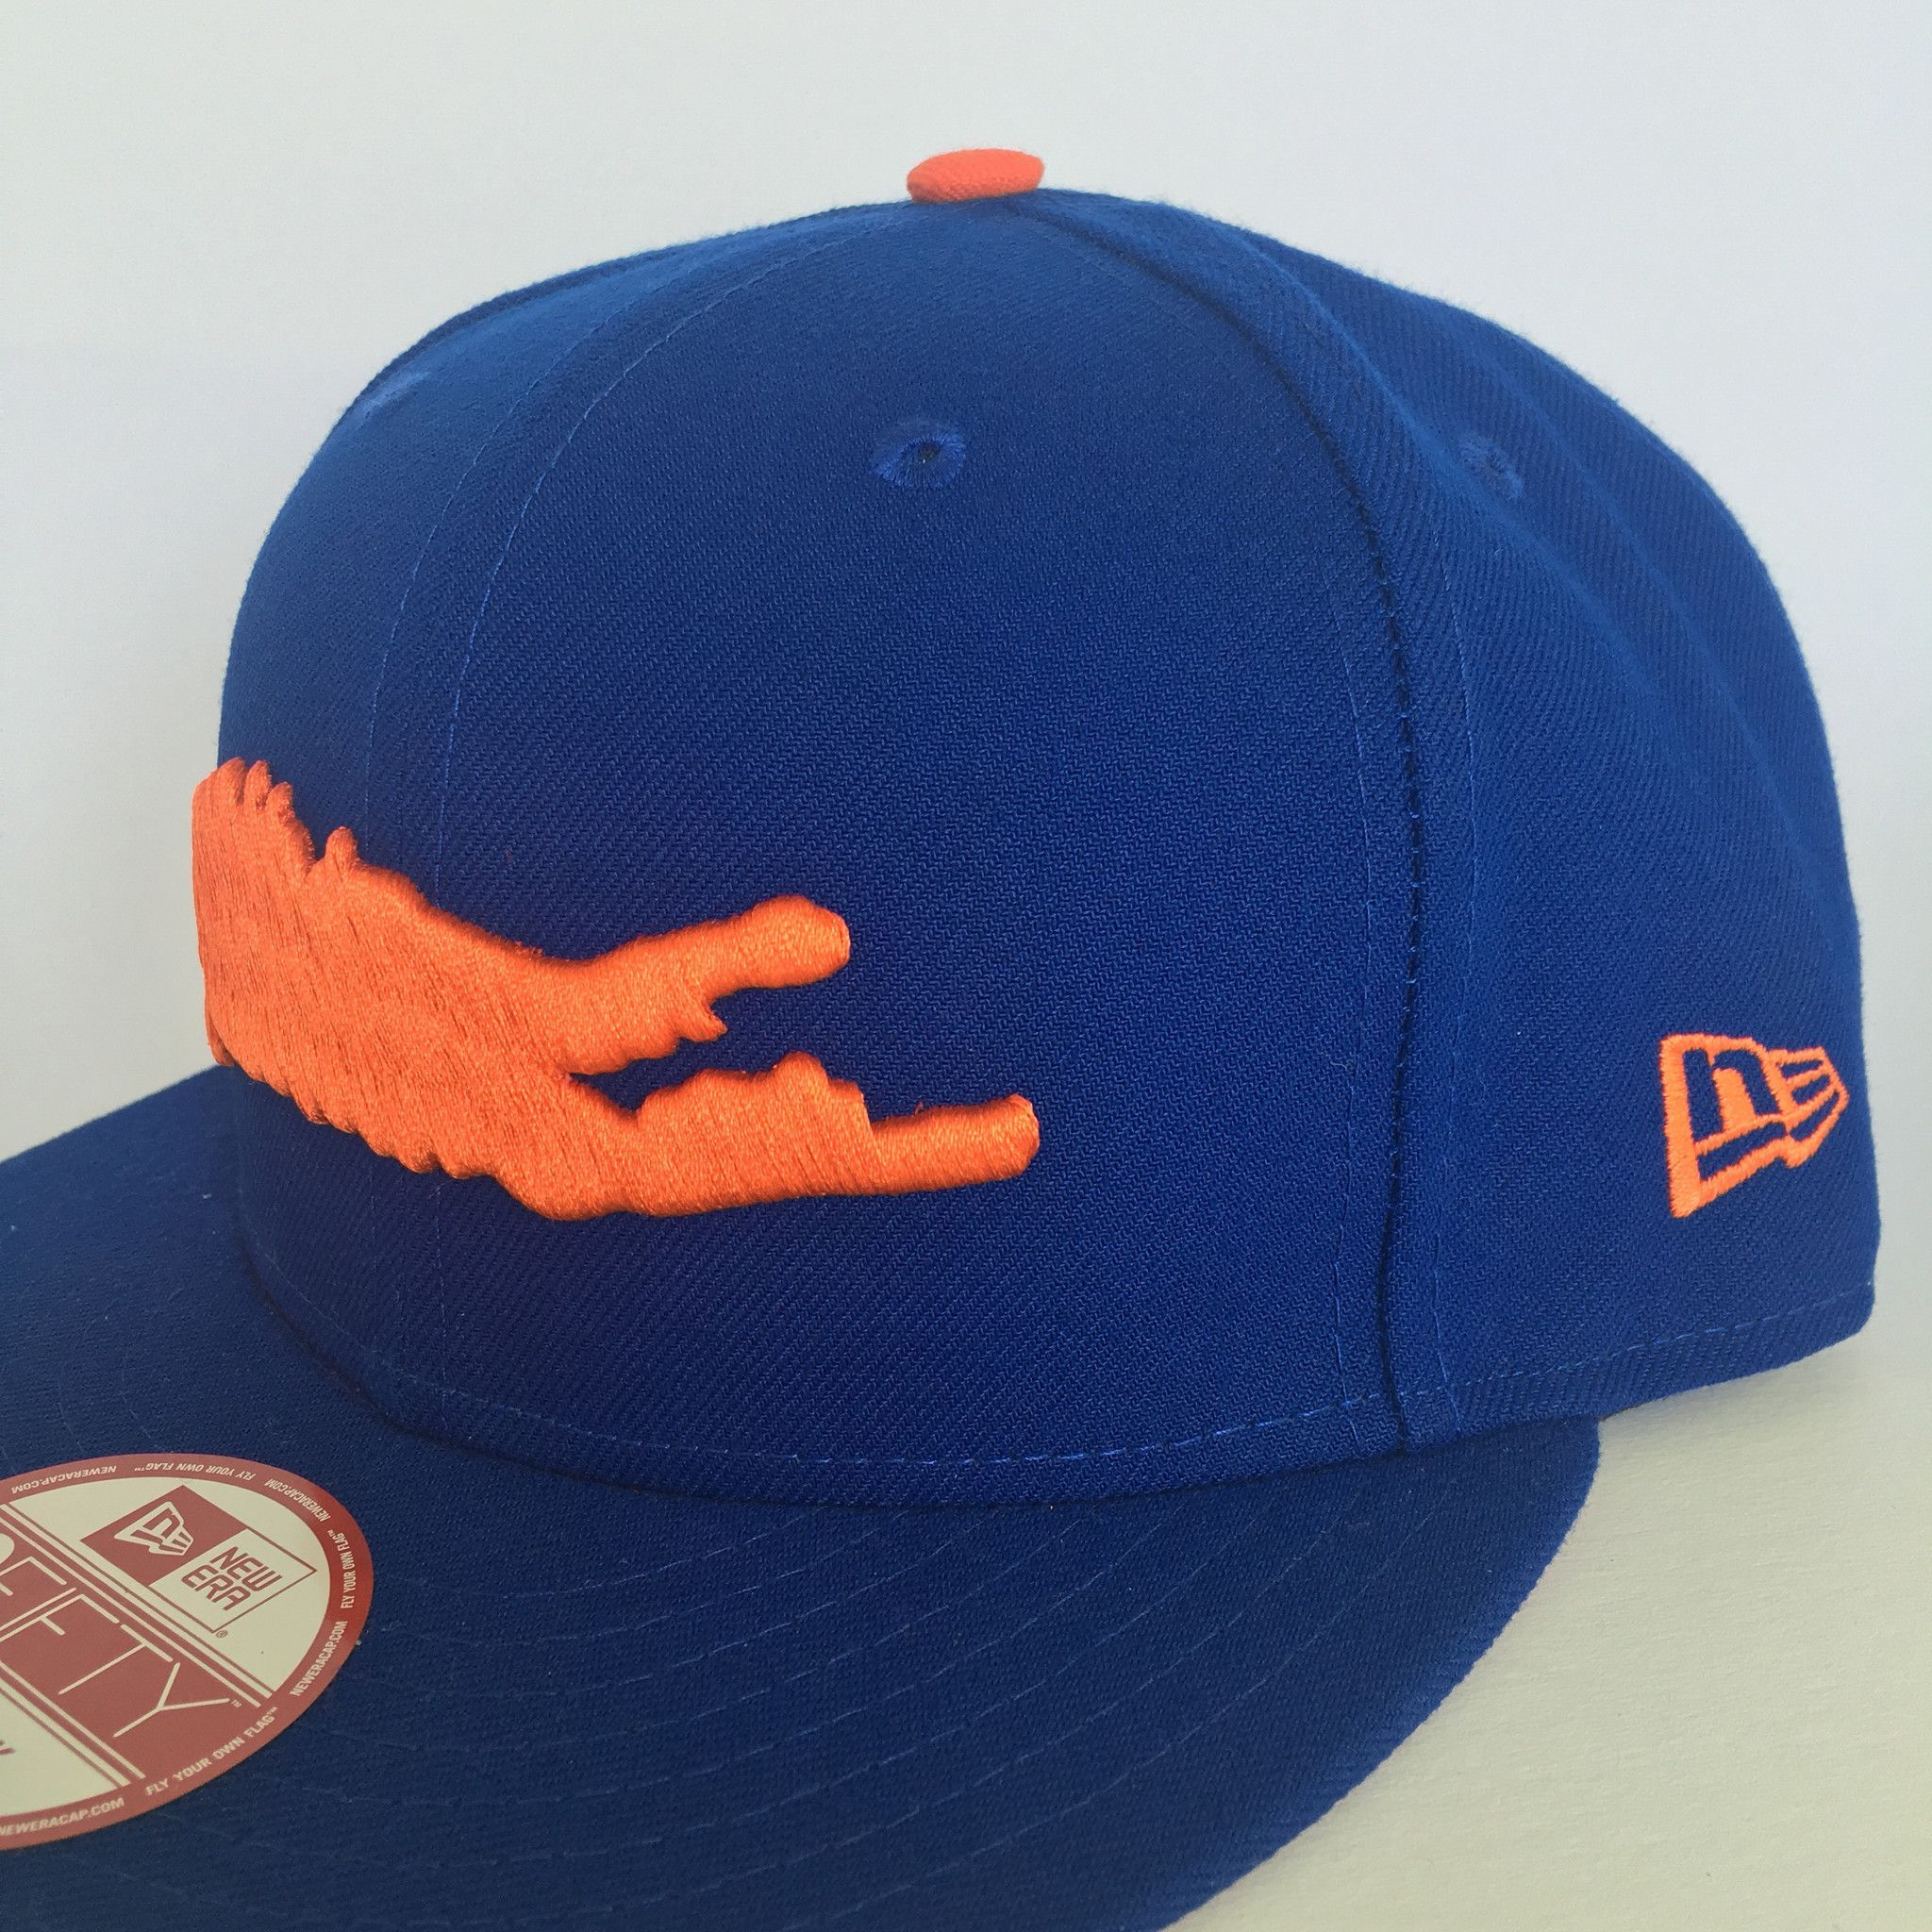 separation shoes c9a78 c8598 The Royal Blue and Orange Official Long Island New Era 9FIFTY snapback  features a pop out